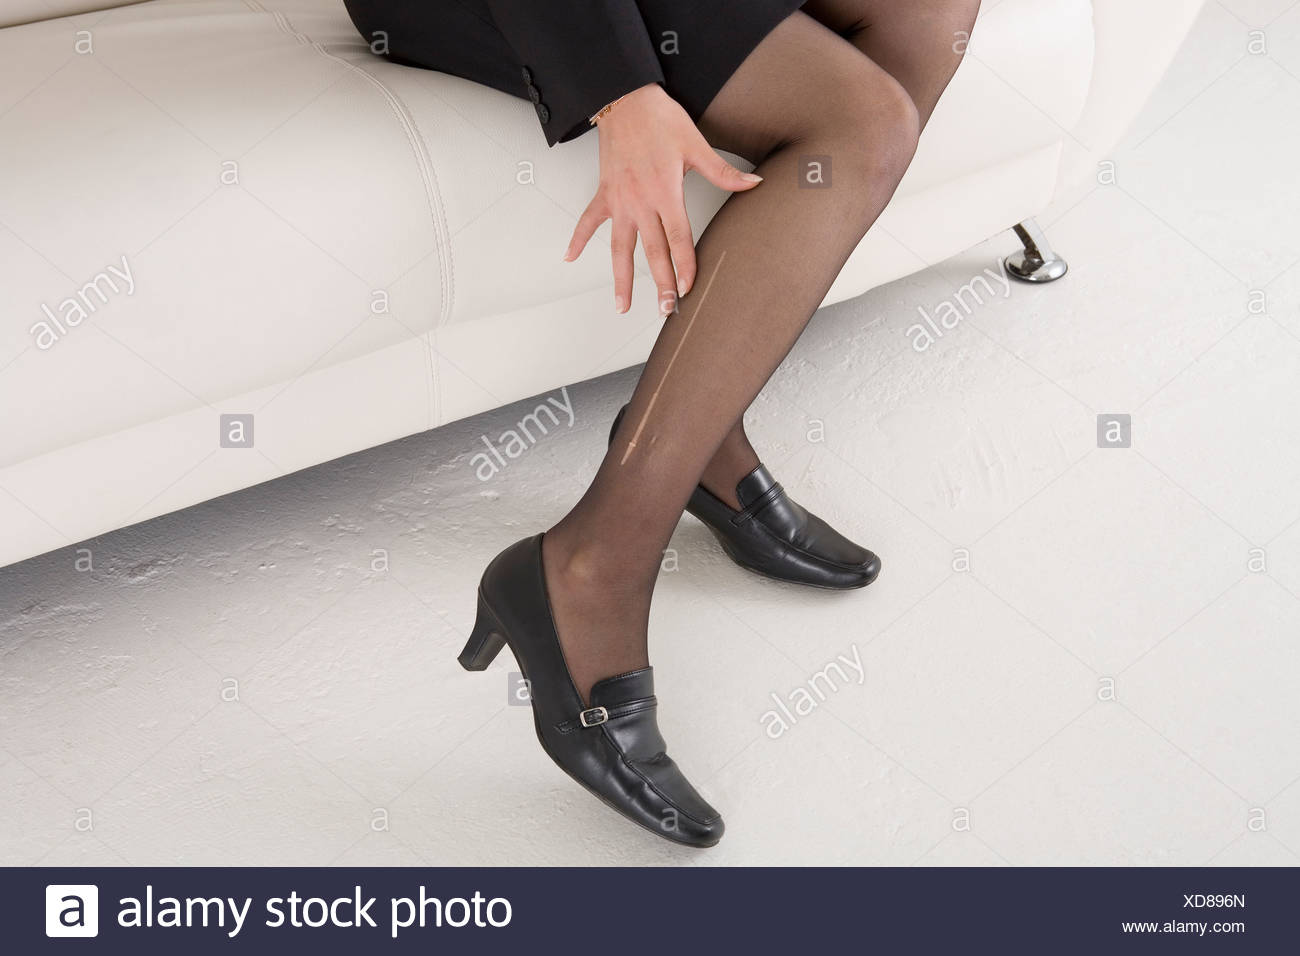 Young woman with laddered stockings - Stock Image